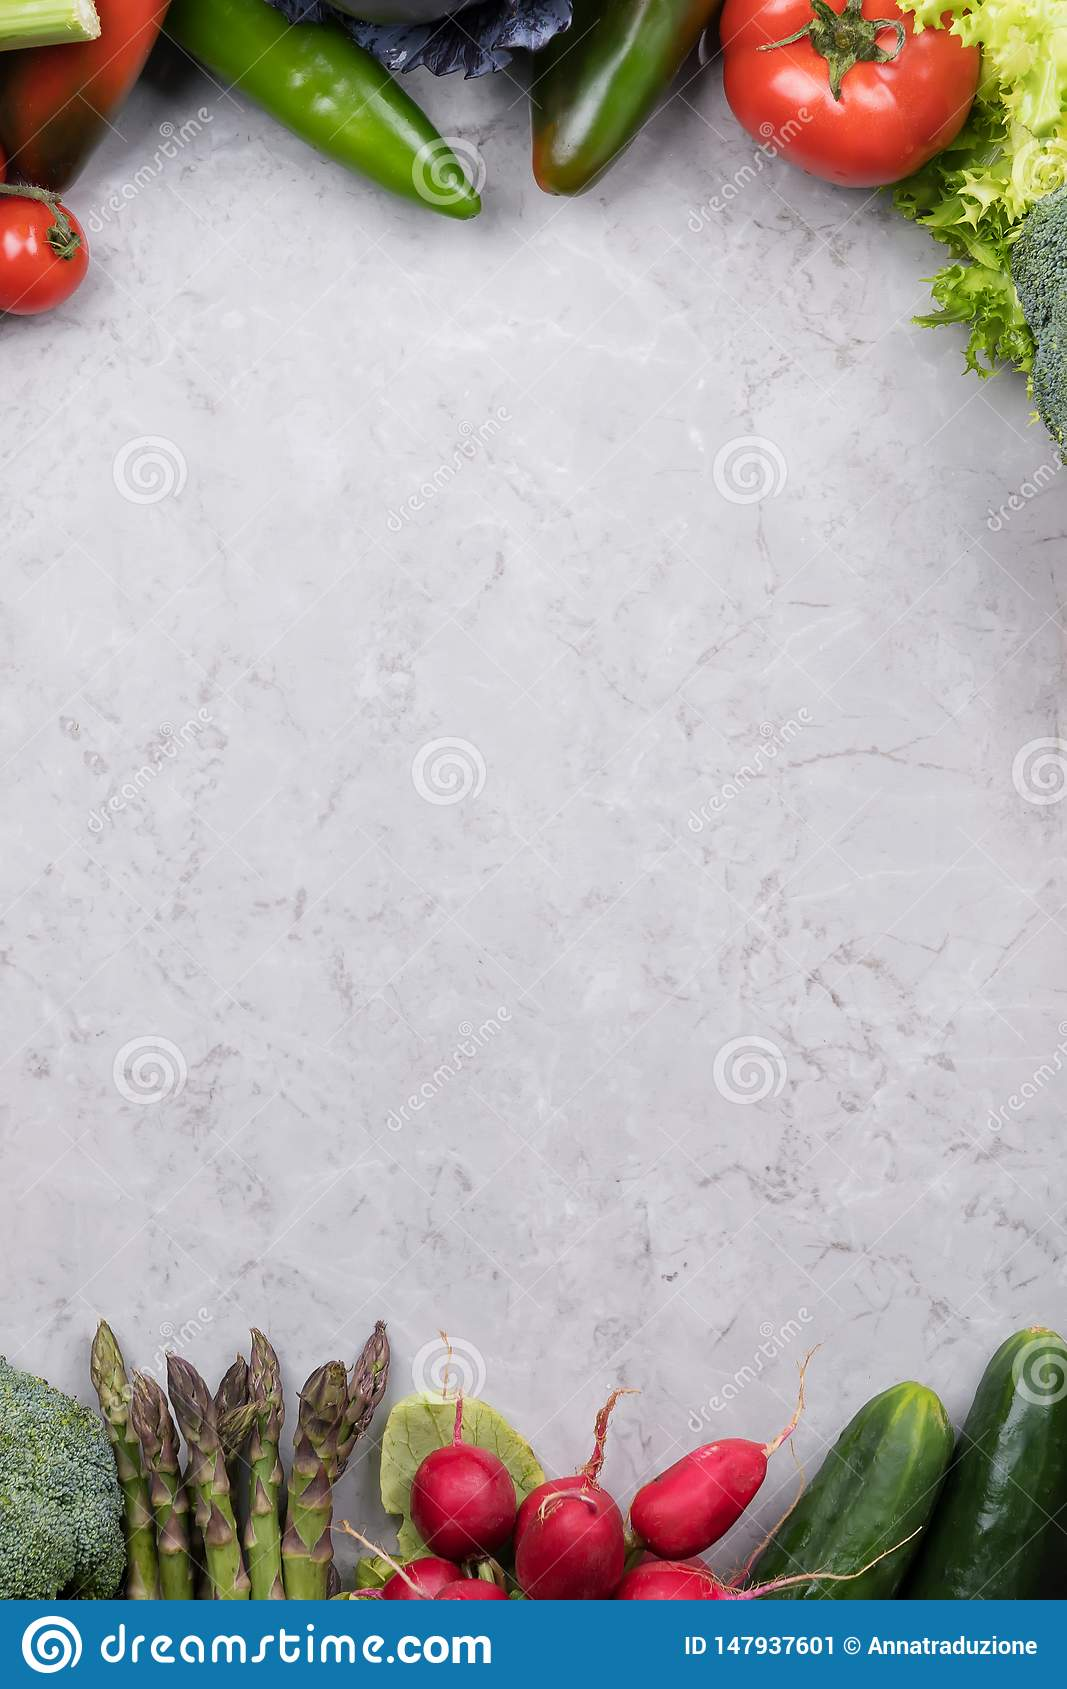 Organic Food Background Food Photography Different Vegetable On Gray Marble Background Copy Space High Resolution Product Stock Image Image Of Harvesting Health 147937601